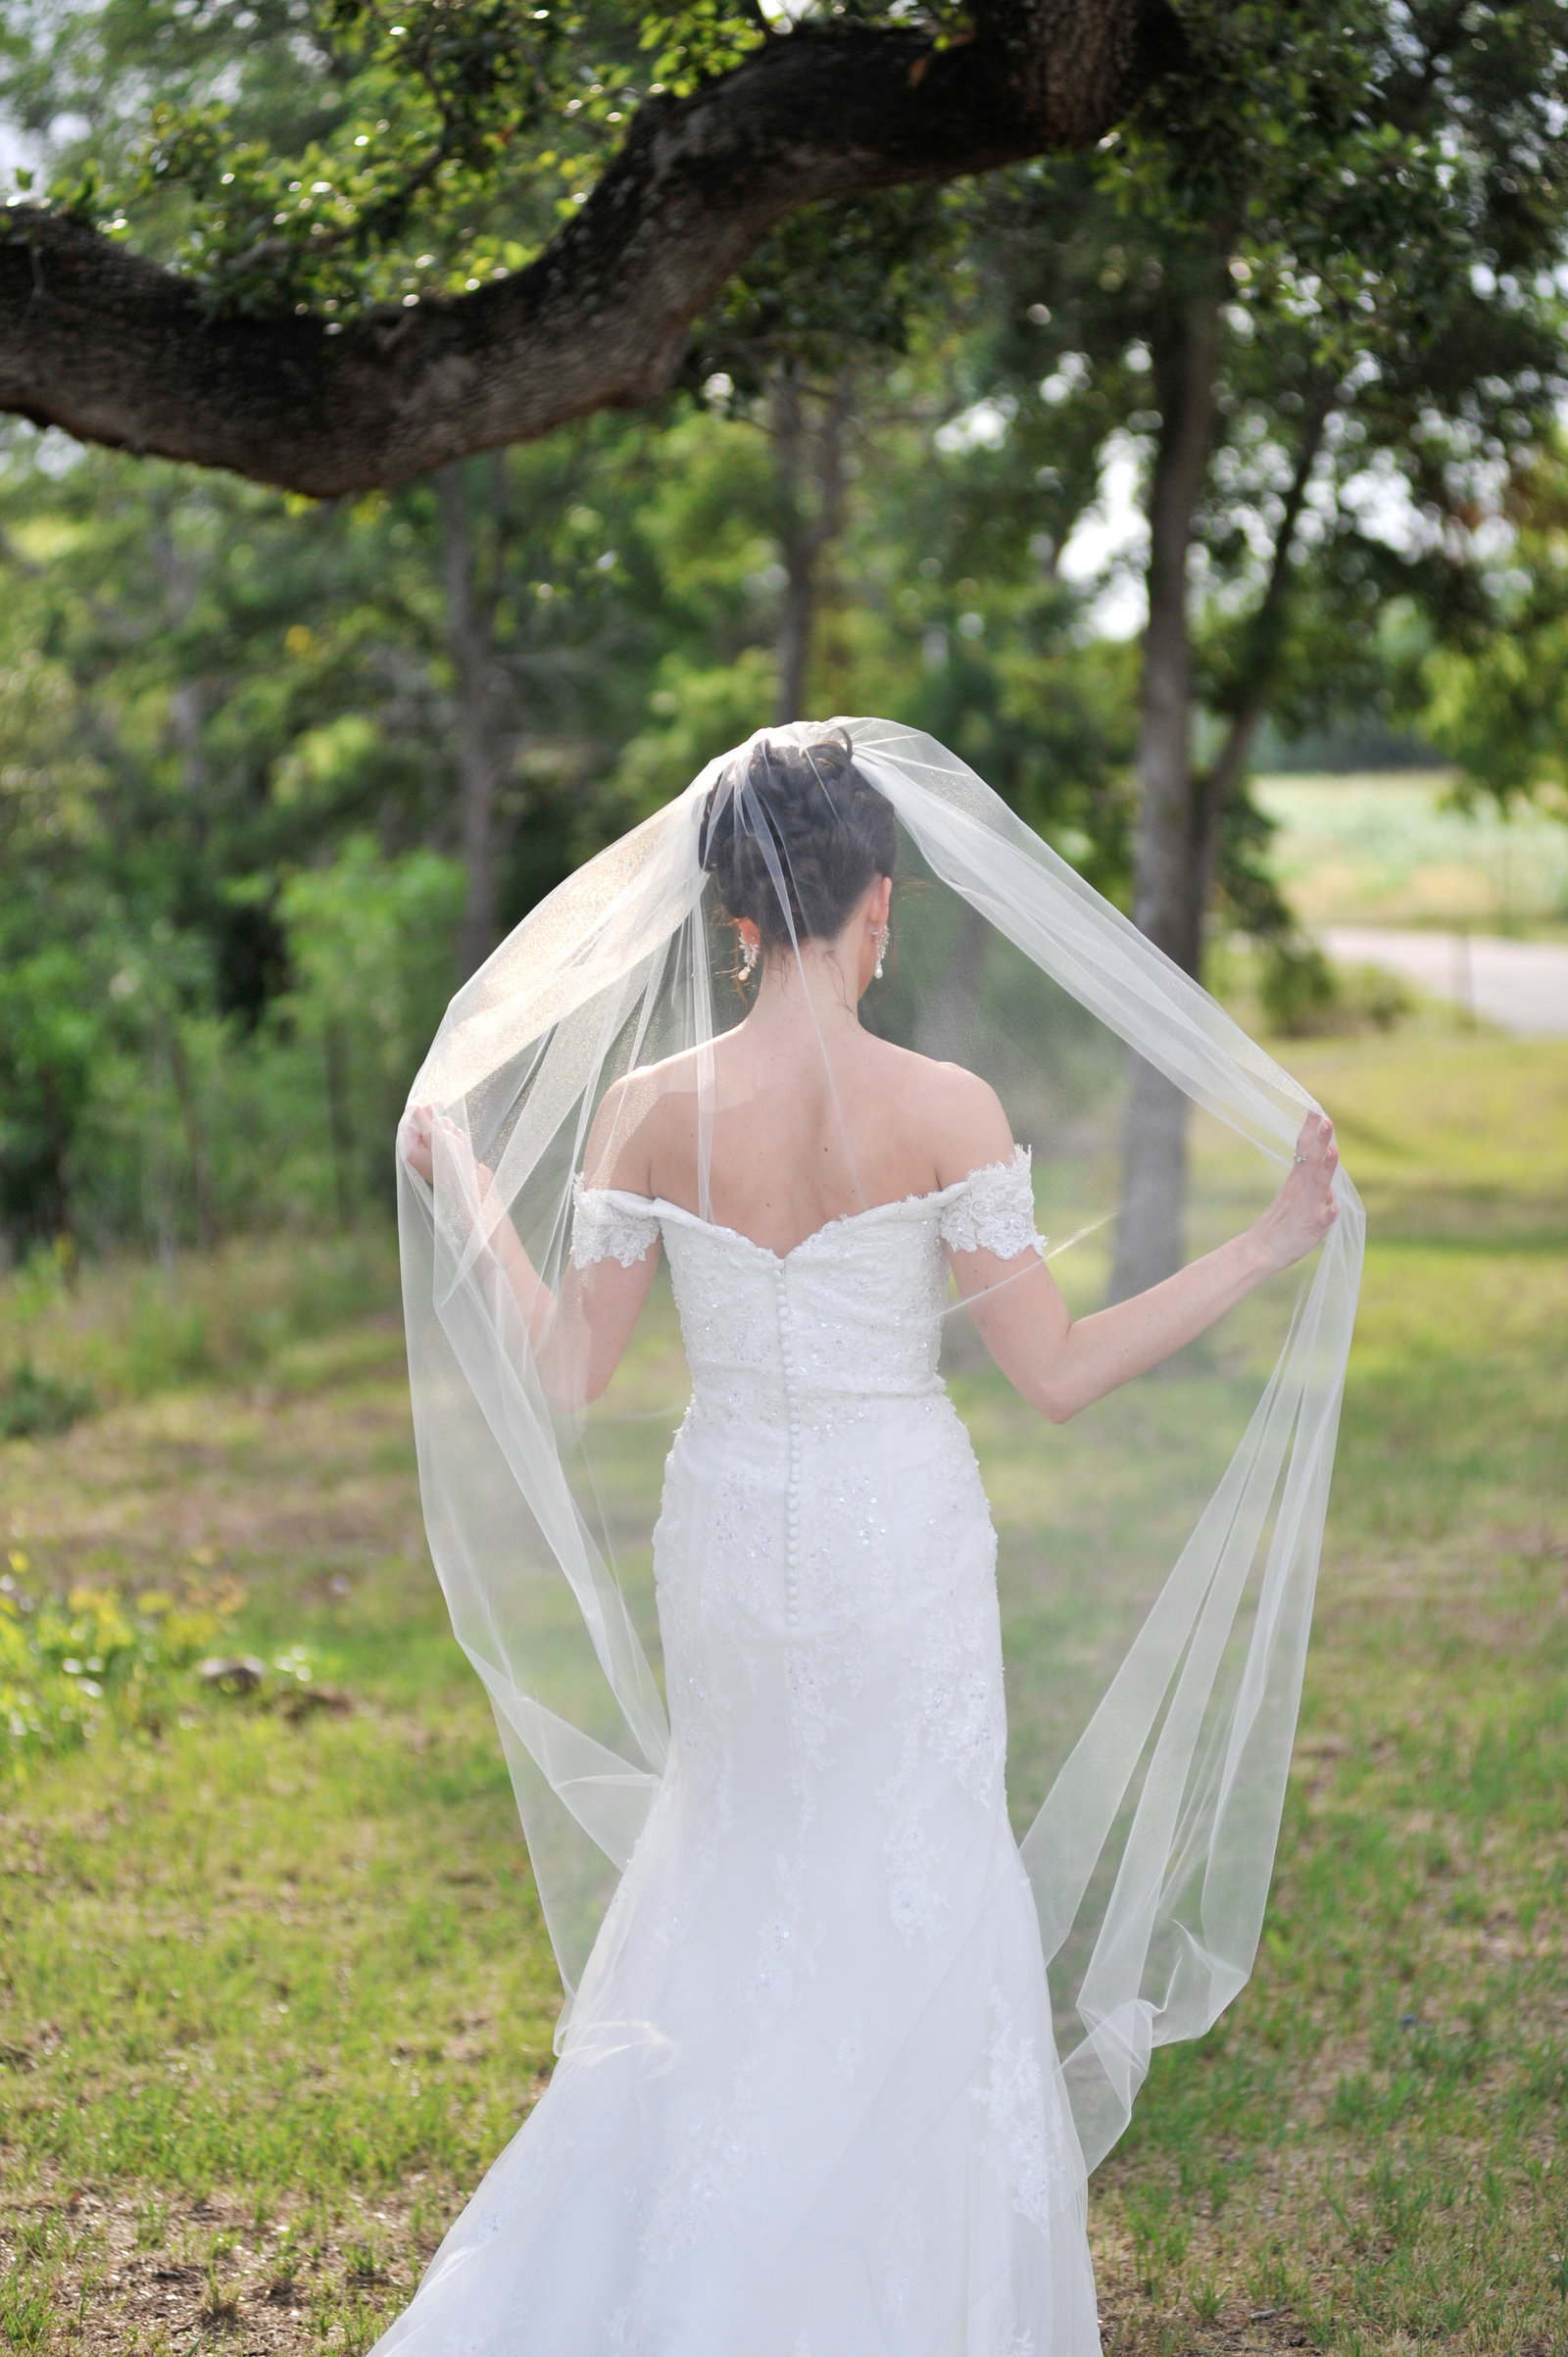 Bride runs her hands along her veil, showing off back of dress at Lone Oak Barn in Round Rock, Texas